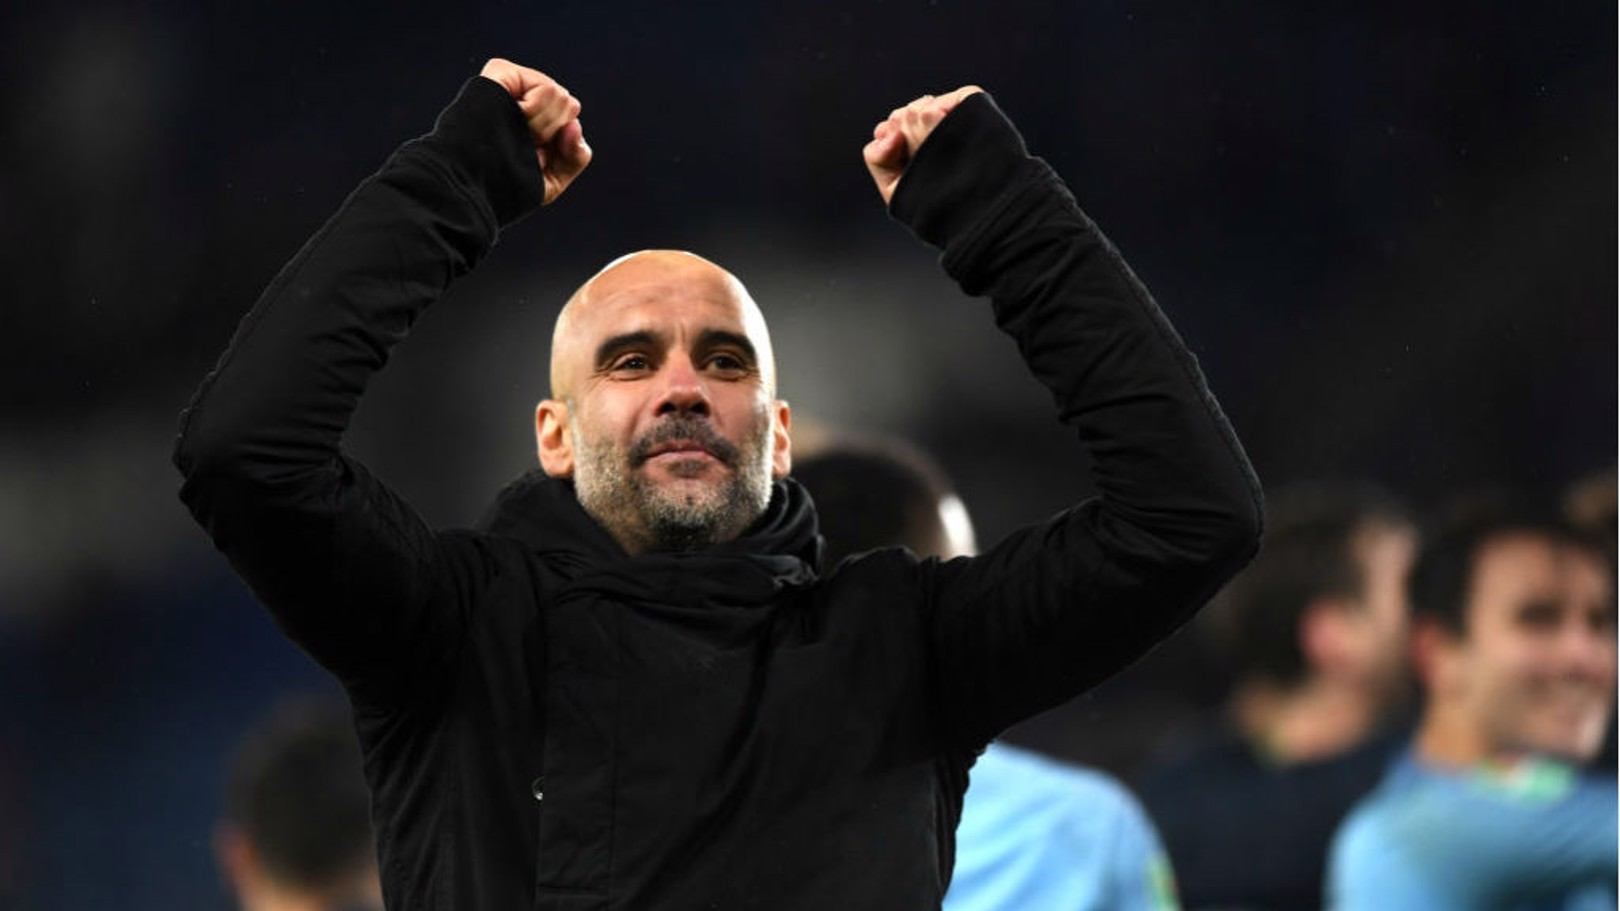 ALL SMILES: Pep Guardiola salutes the City fans after the Blues' spot-kick win